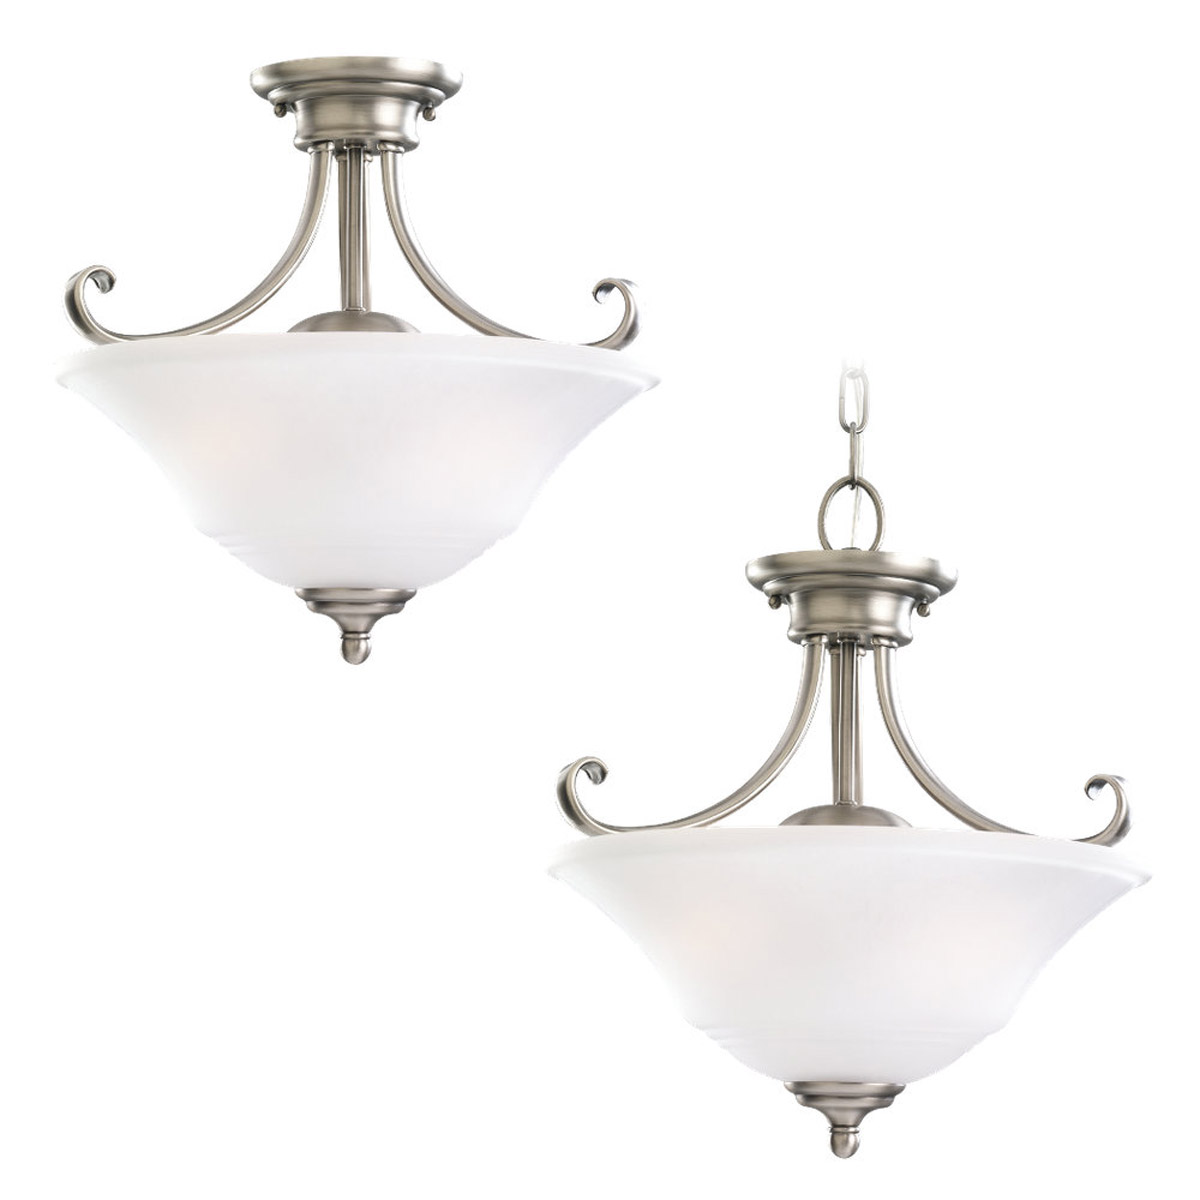 Sea Gull Lighting Parkview 2 Light Pendant Convertible in Antique Brushed Nickel 77380-965